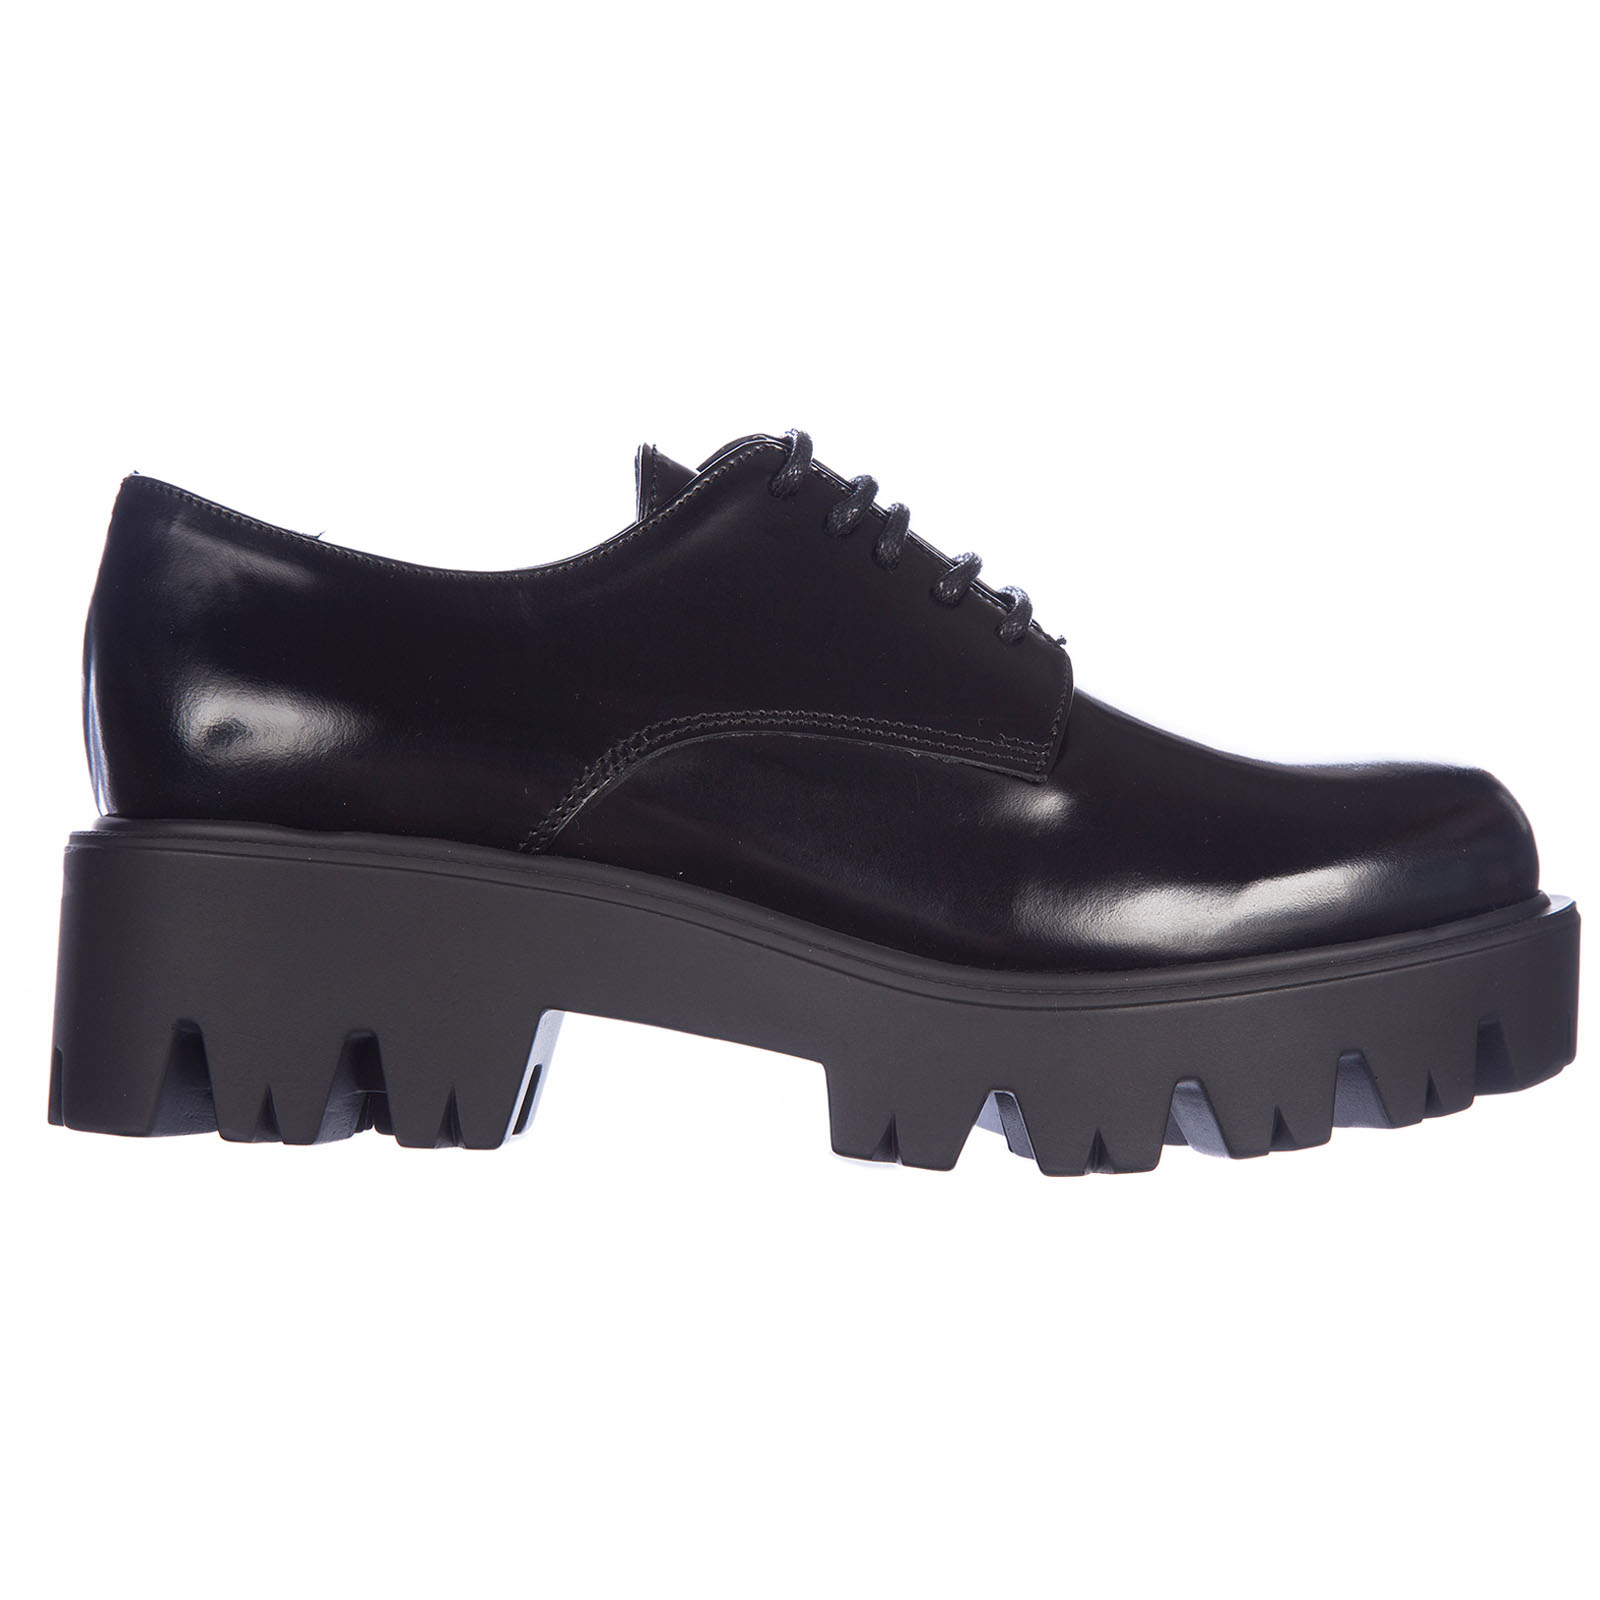 Women's classic leather lace up laced formal shoes derby